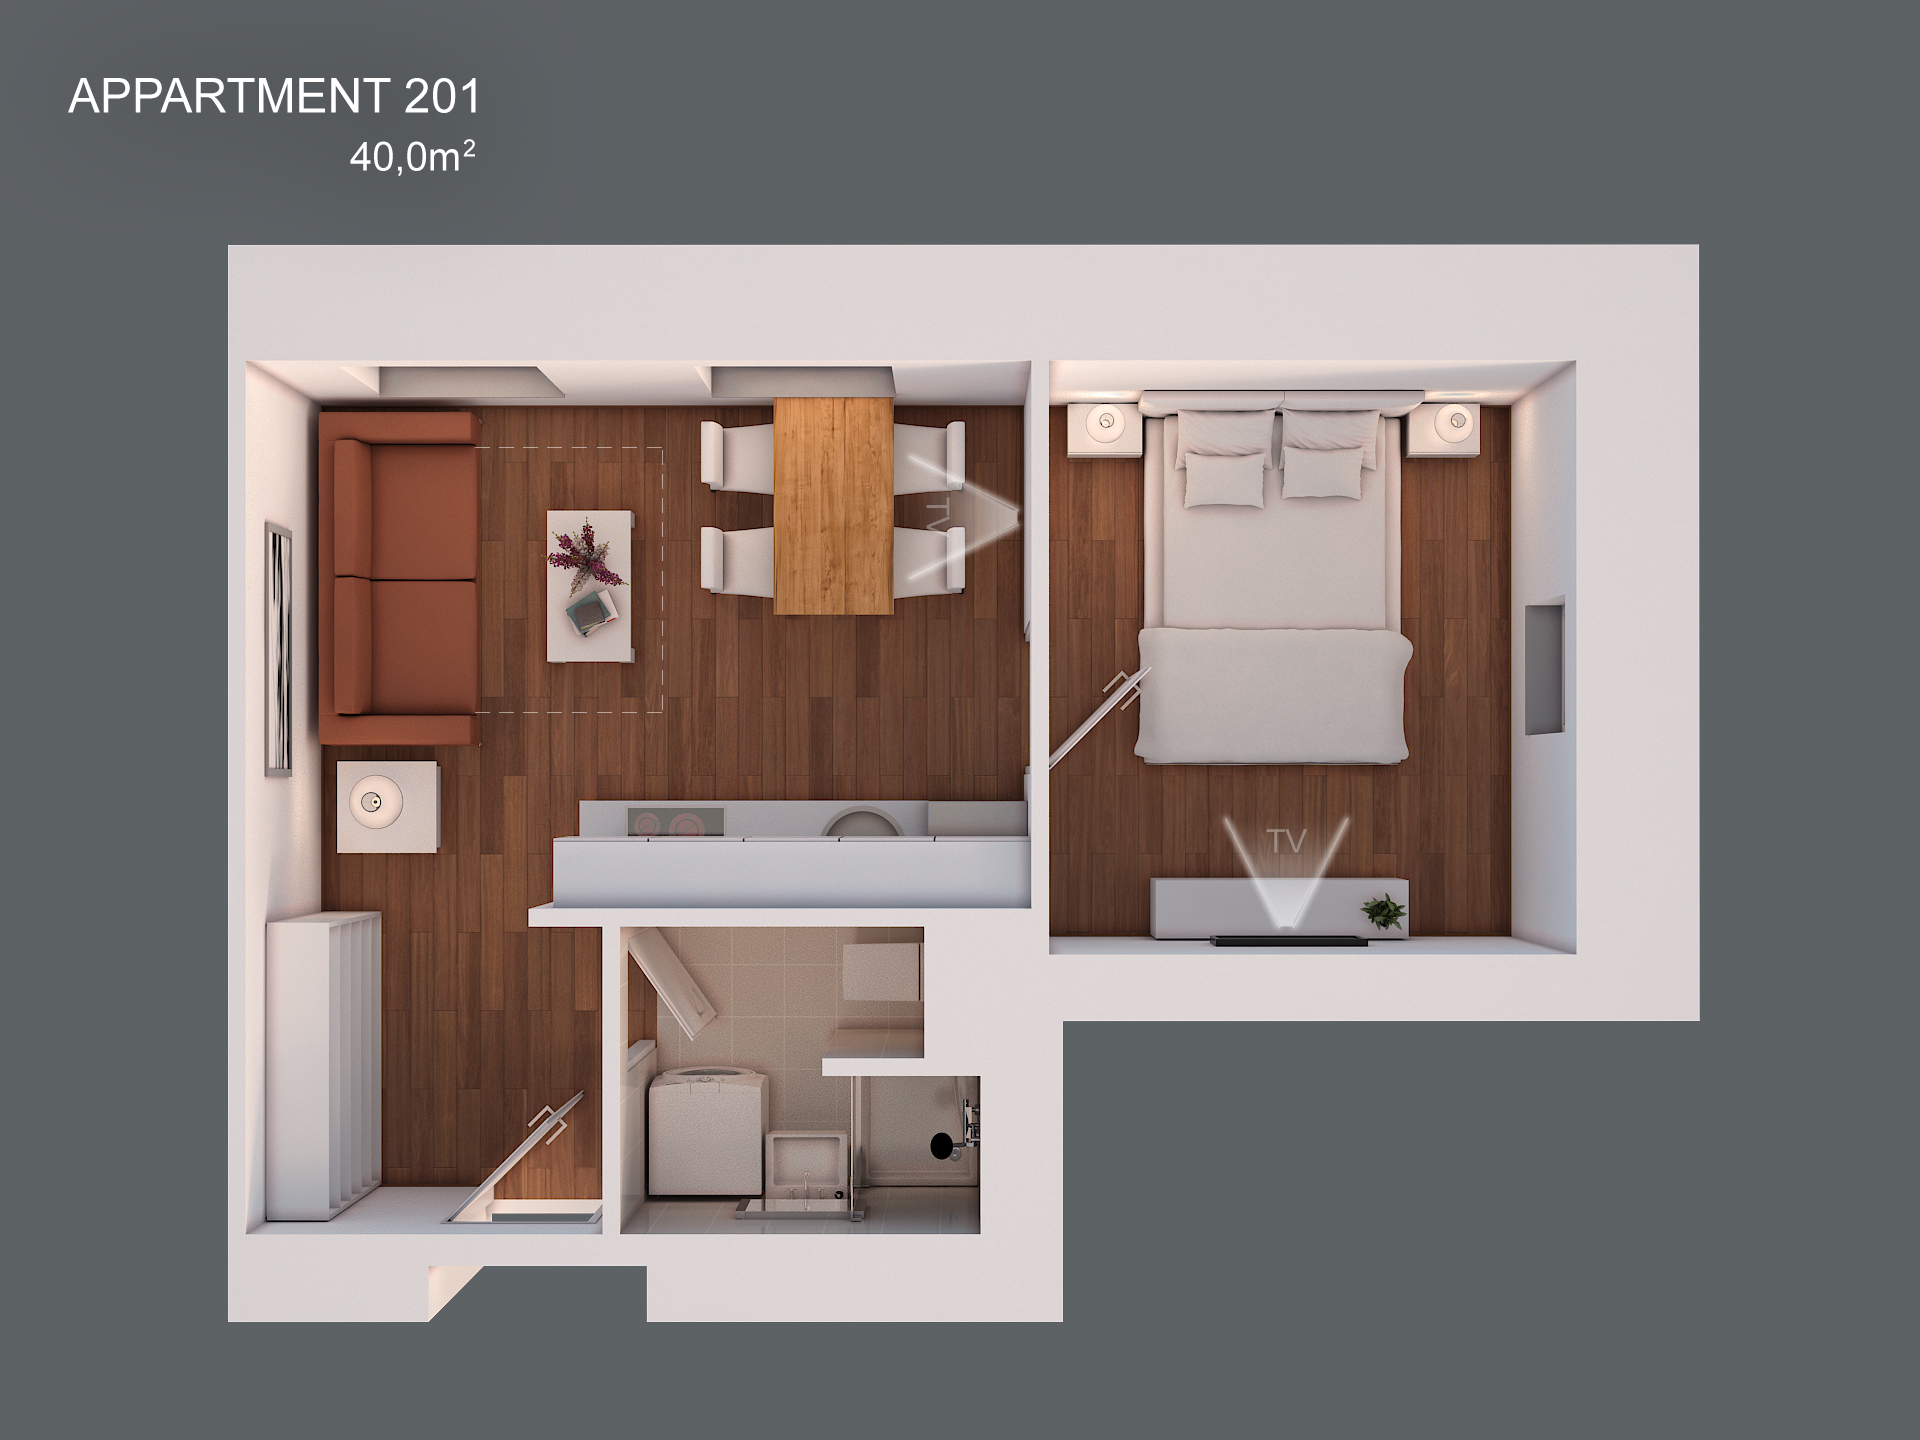 Apartment 201 layout